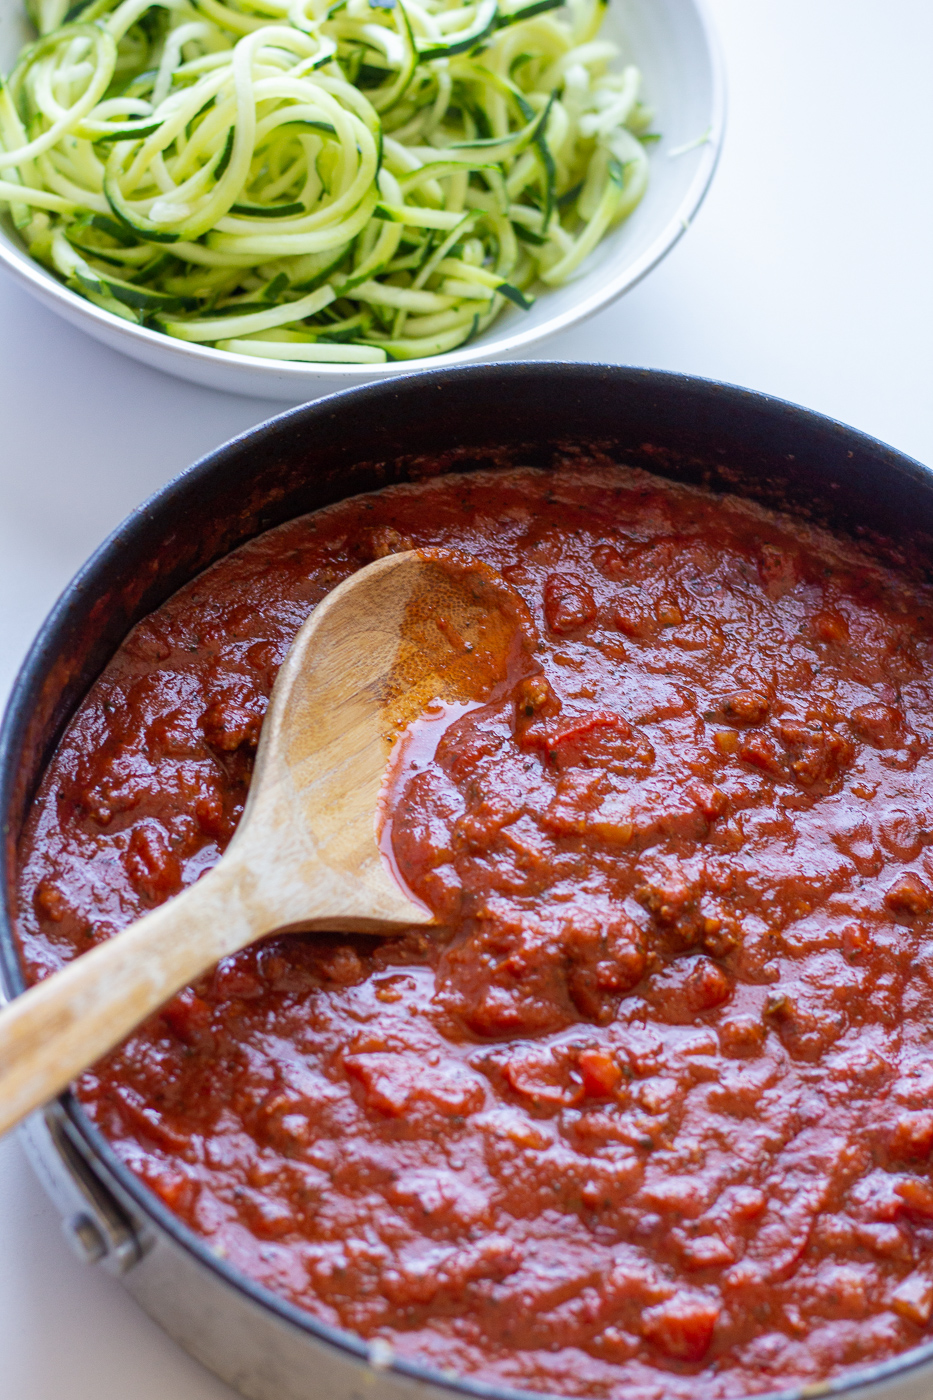 Favorite Healthy Homemade Pasta Sauce